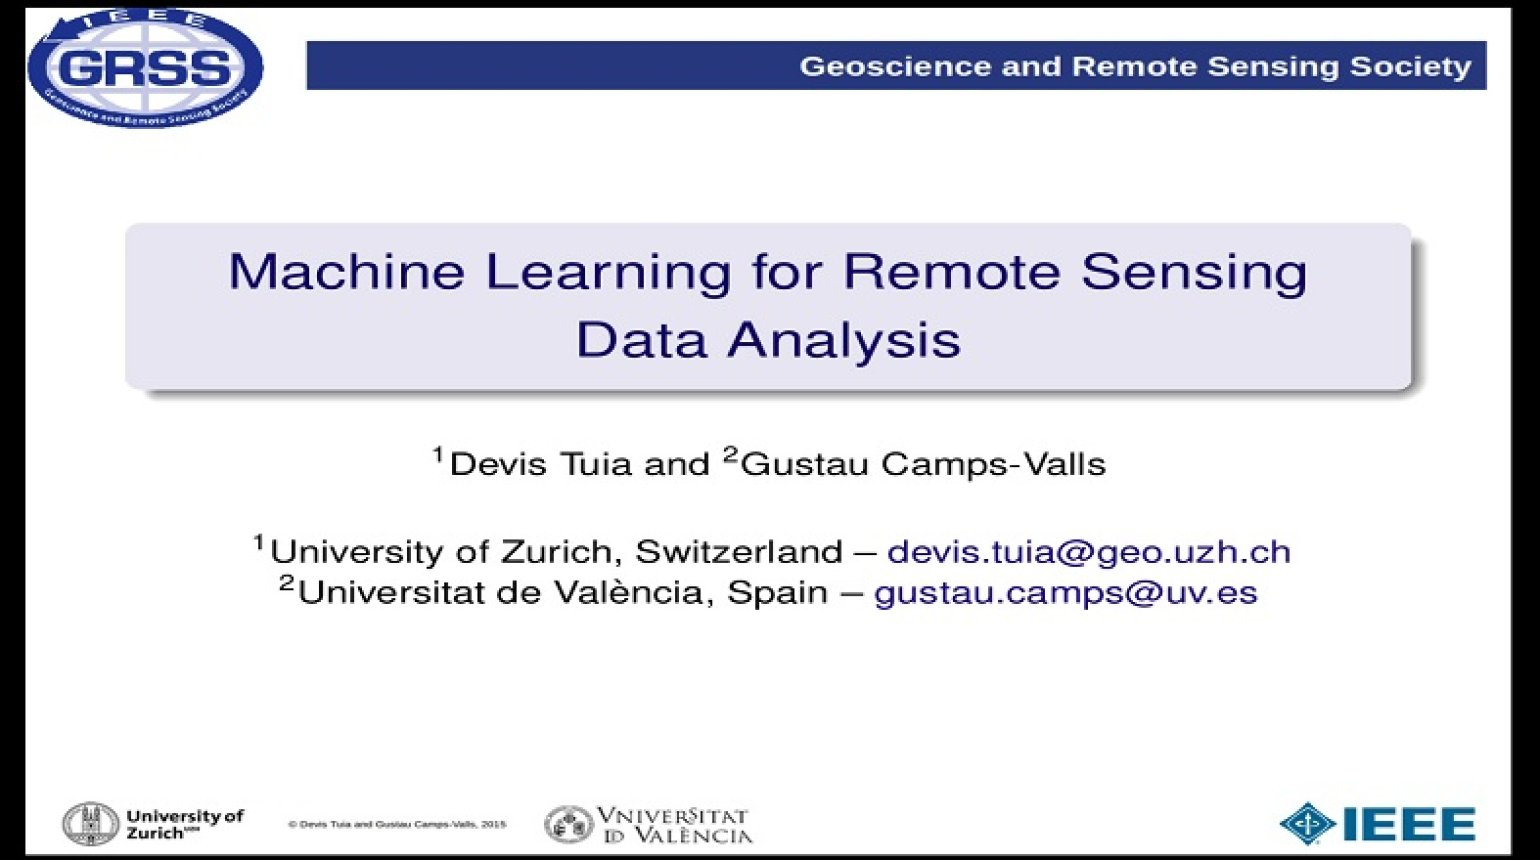 Machine Learning for Remote Sensing Data Analysis